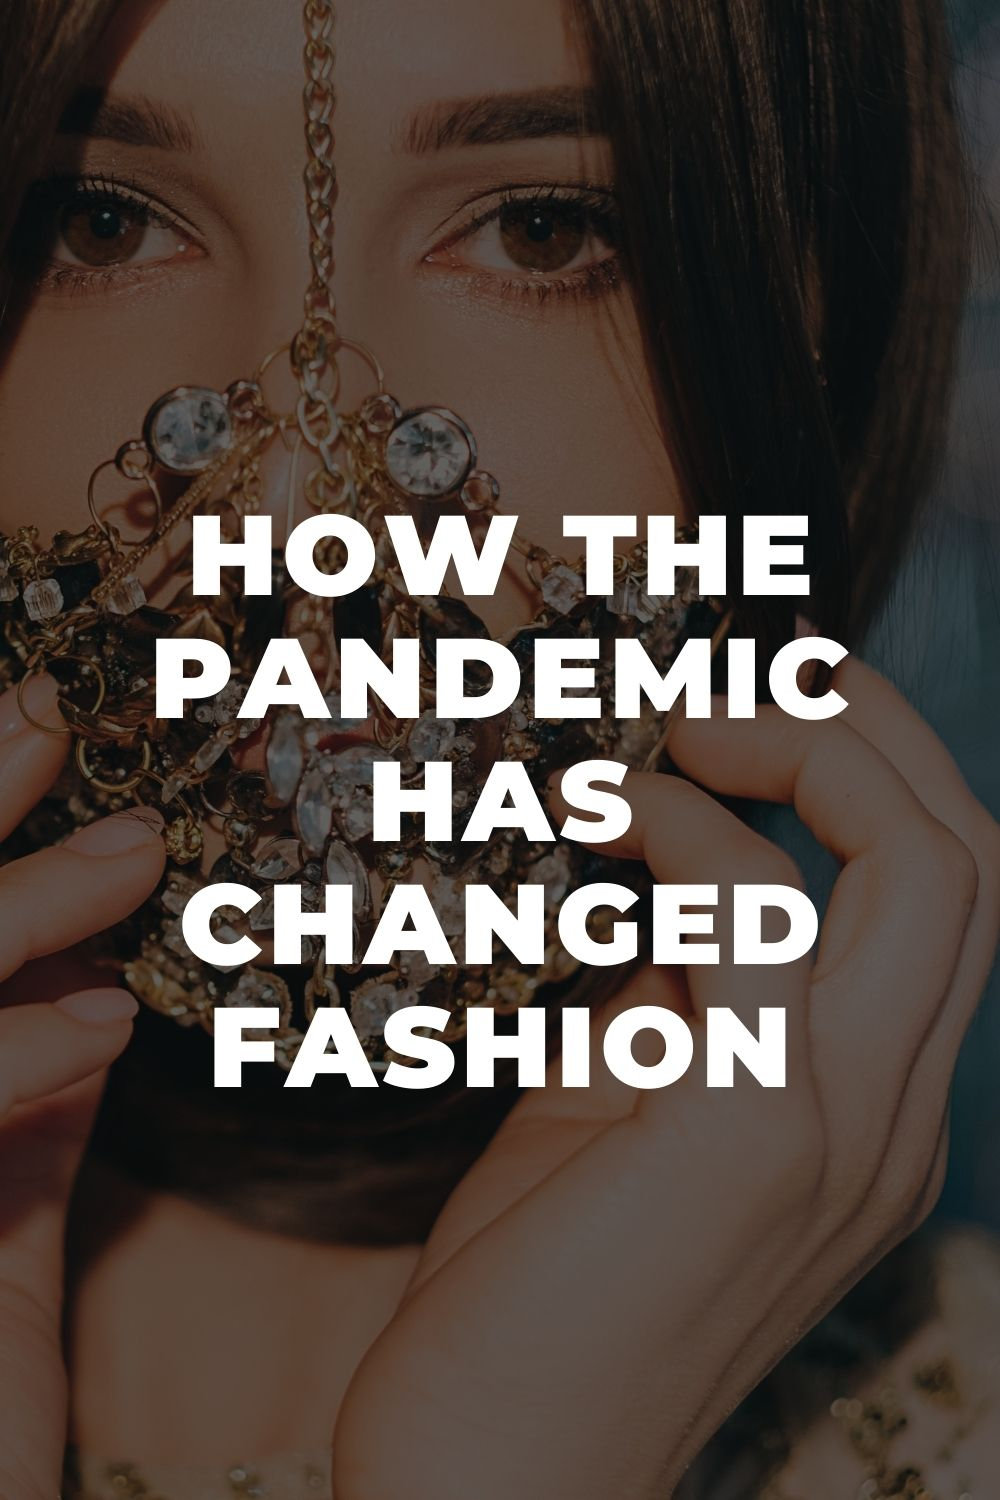 How the Pandemic Has Changed Fashion